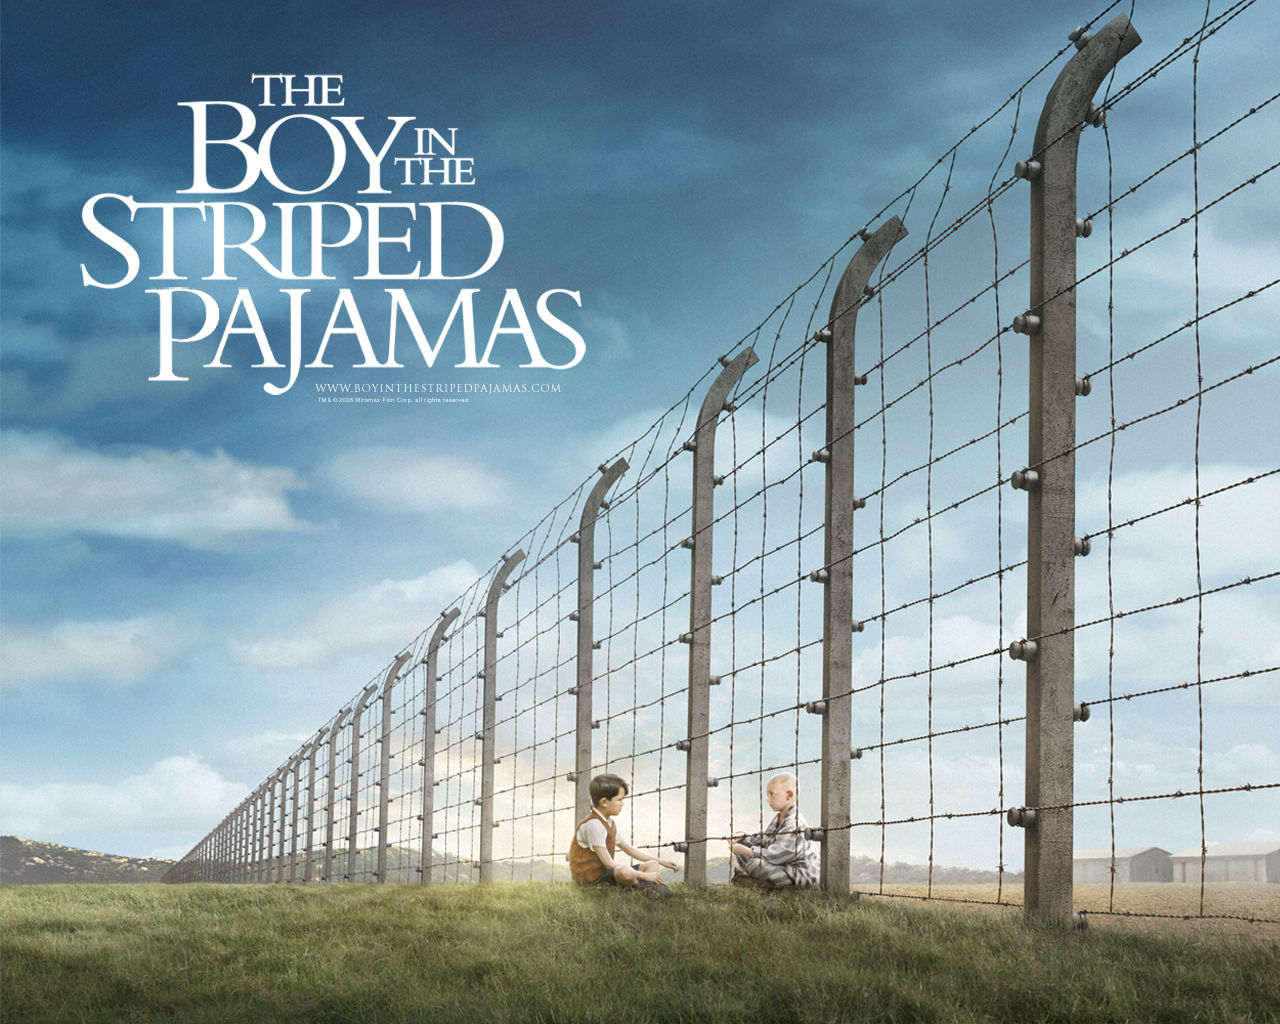 THE BOY IN THE STRIPED PYJAMAS – BAIATUL IN PIJAMALE VARGATE (2008)